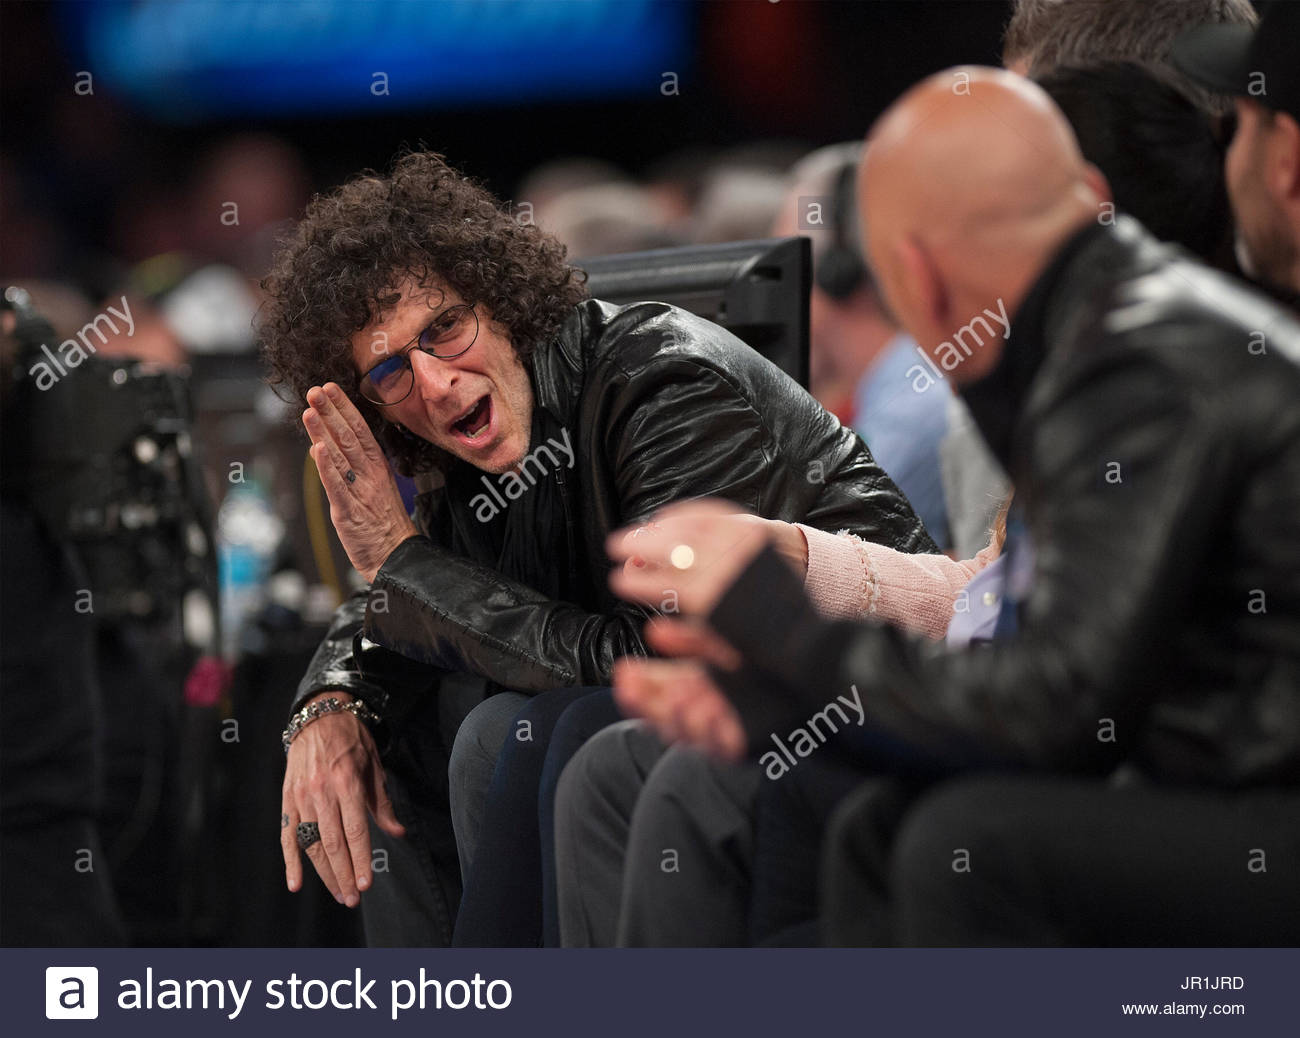 Shock the pussy howard stern remarkable, very